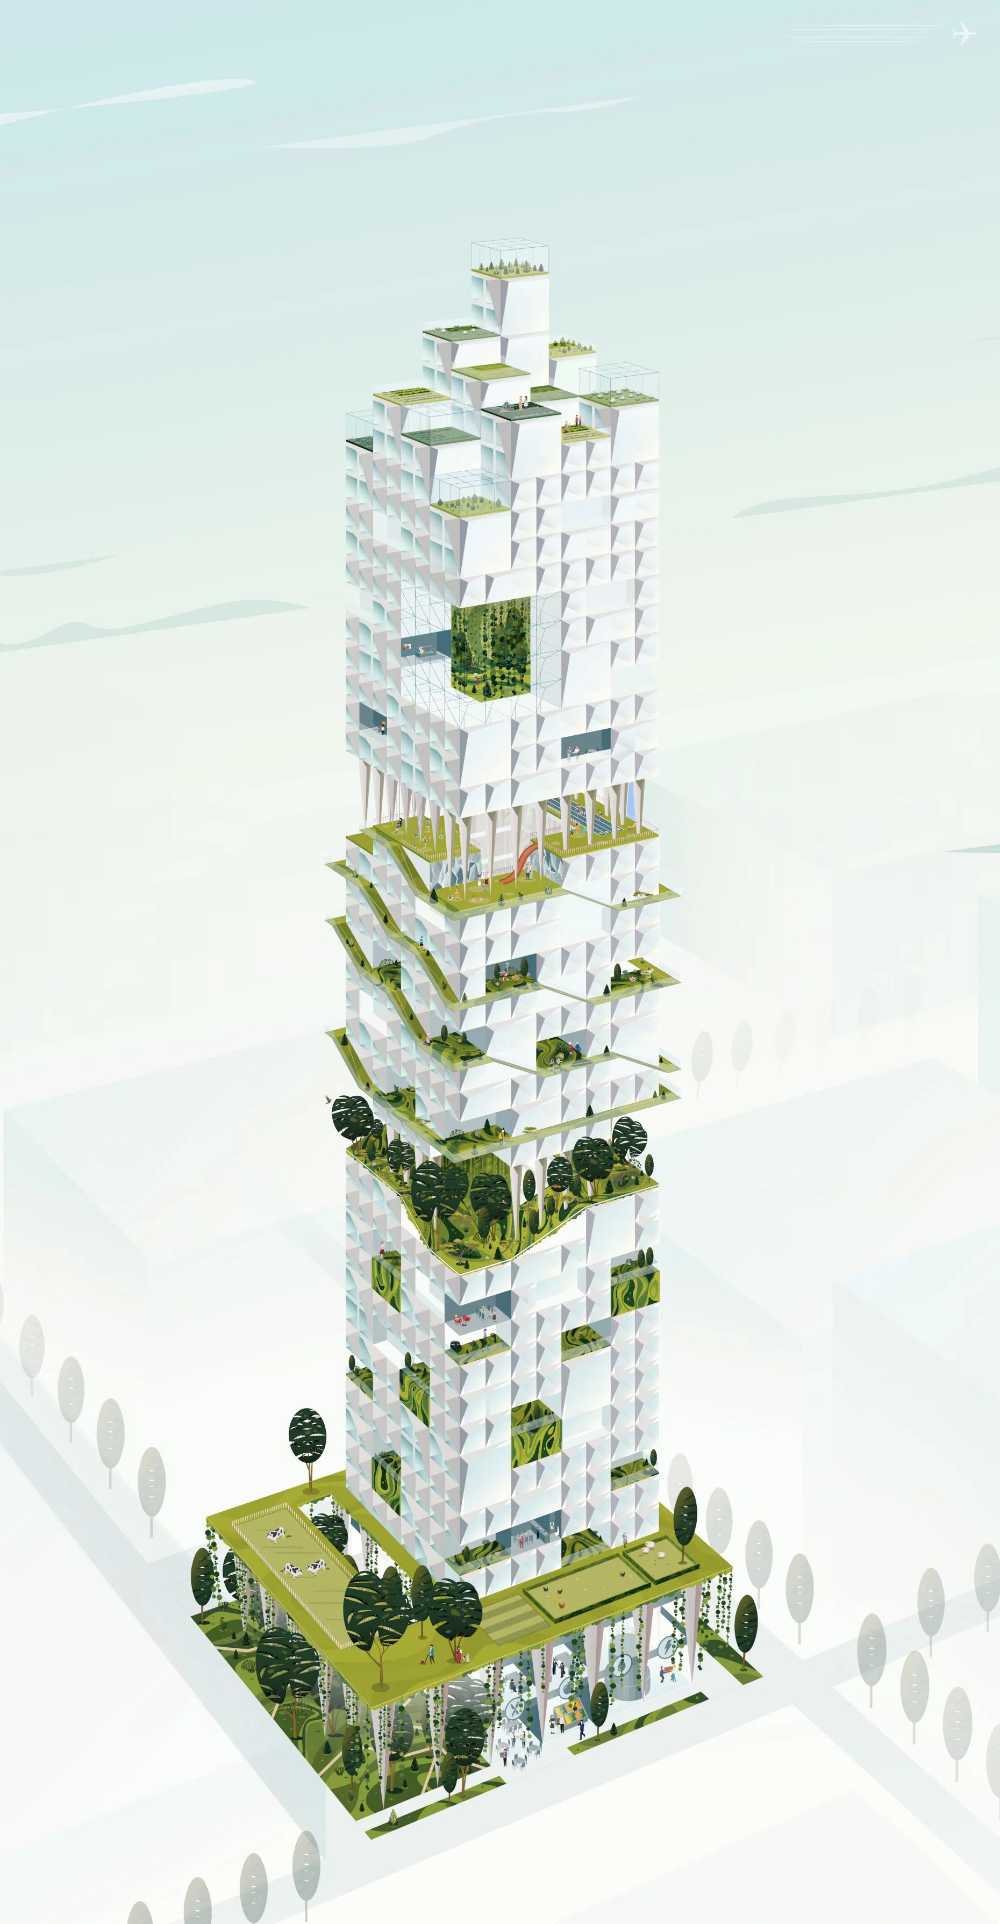 Nature inclusive high rise building in the city of The Hague